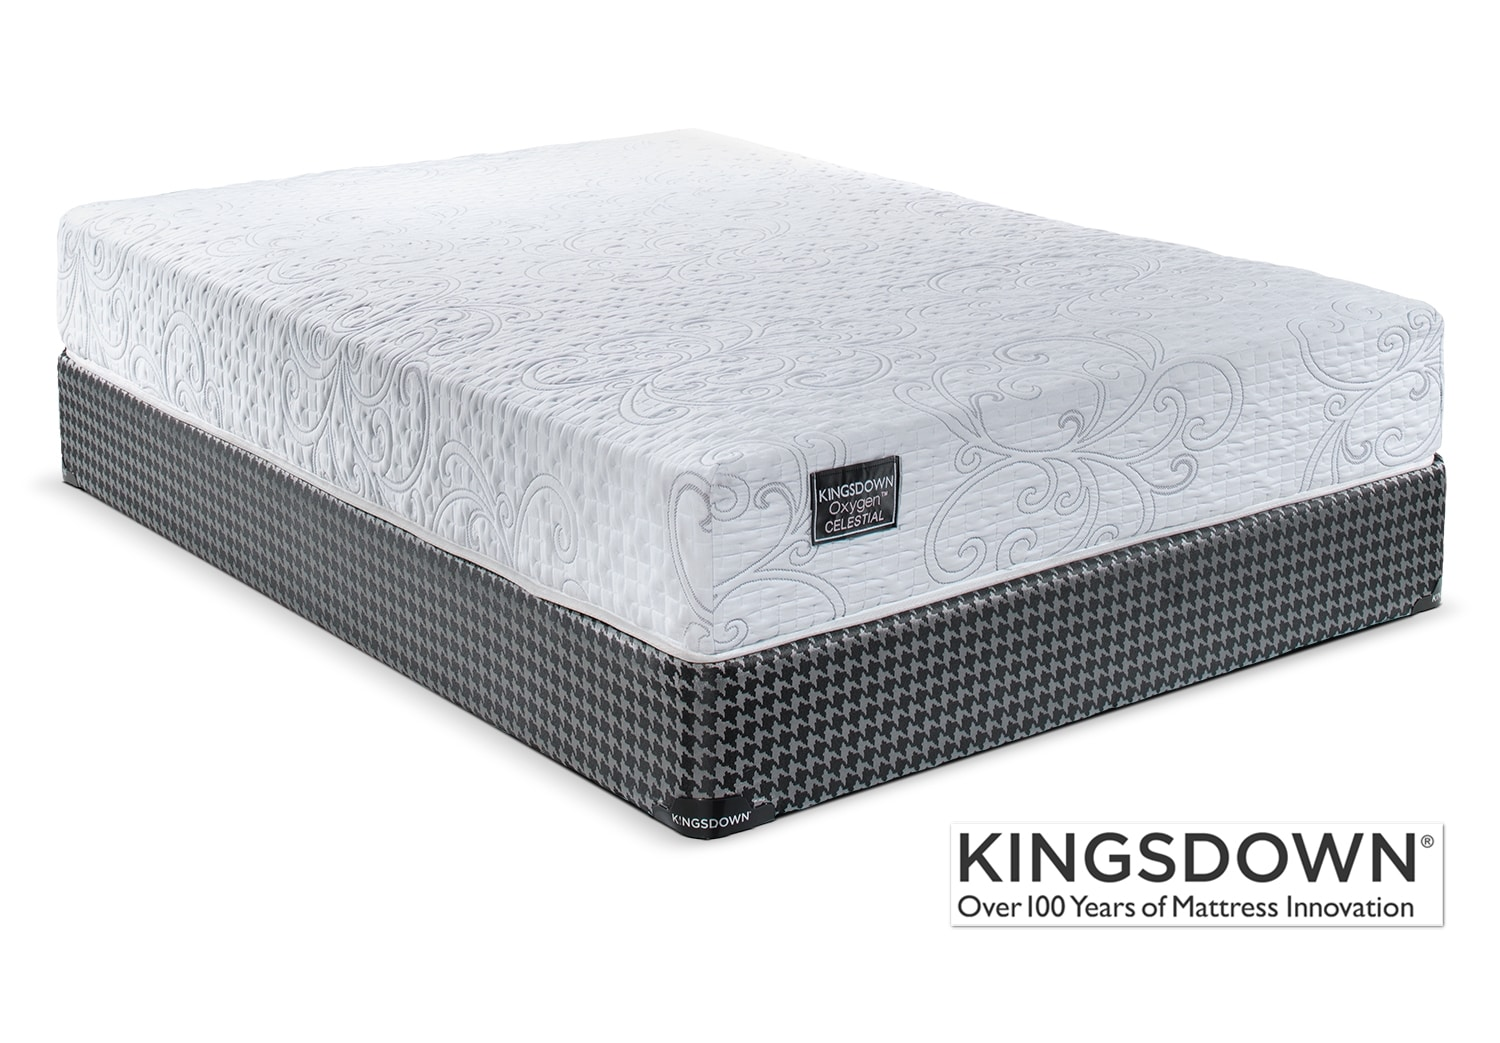 Mattresses and Bedding - Kingsdown Celestial Queen Mattress/Boxspring Set